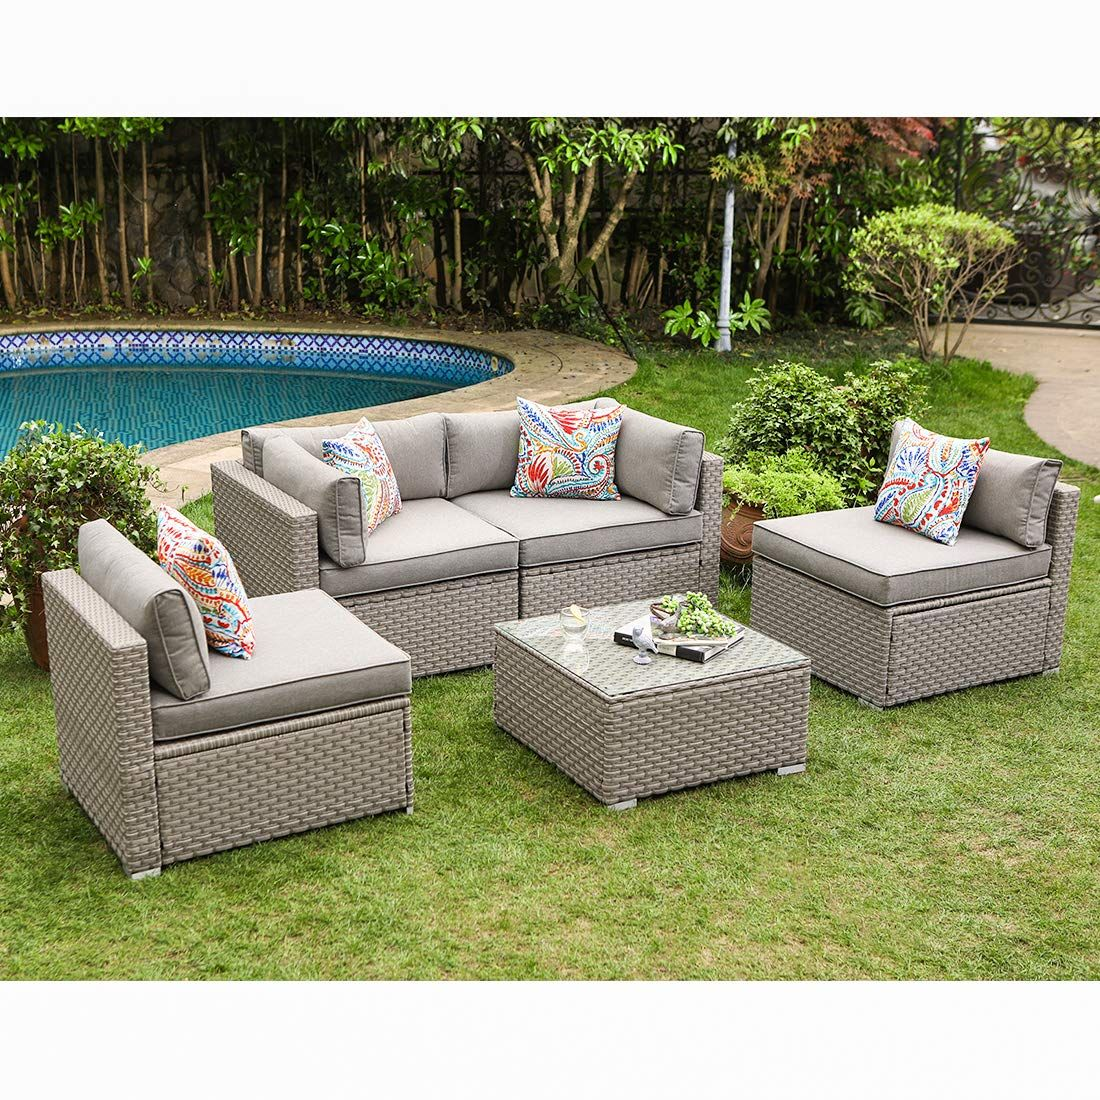 Cosiest Furniture Sectional Cushions Backyard In 2020 Outdoor Furniture Sets Outdoor Furniture Outdoor Wicker Chairs